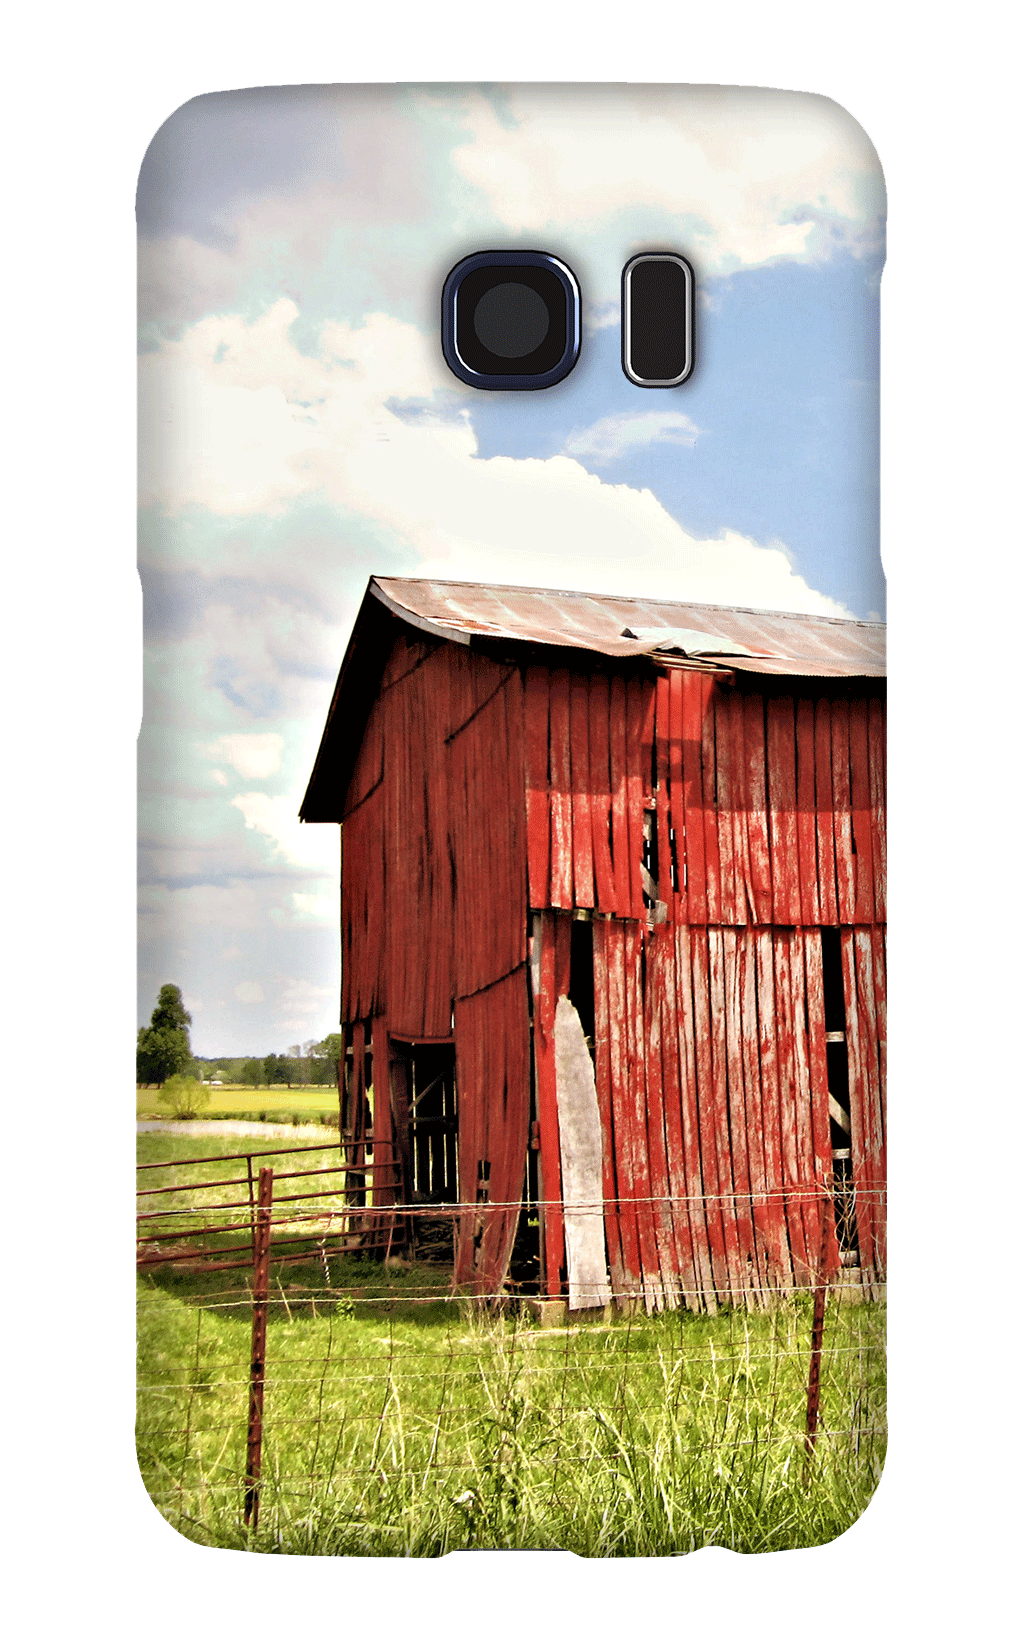 Farmer-Fading-Cellphone-Case1